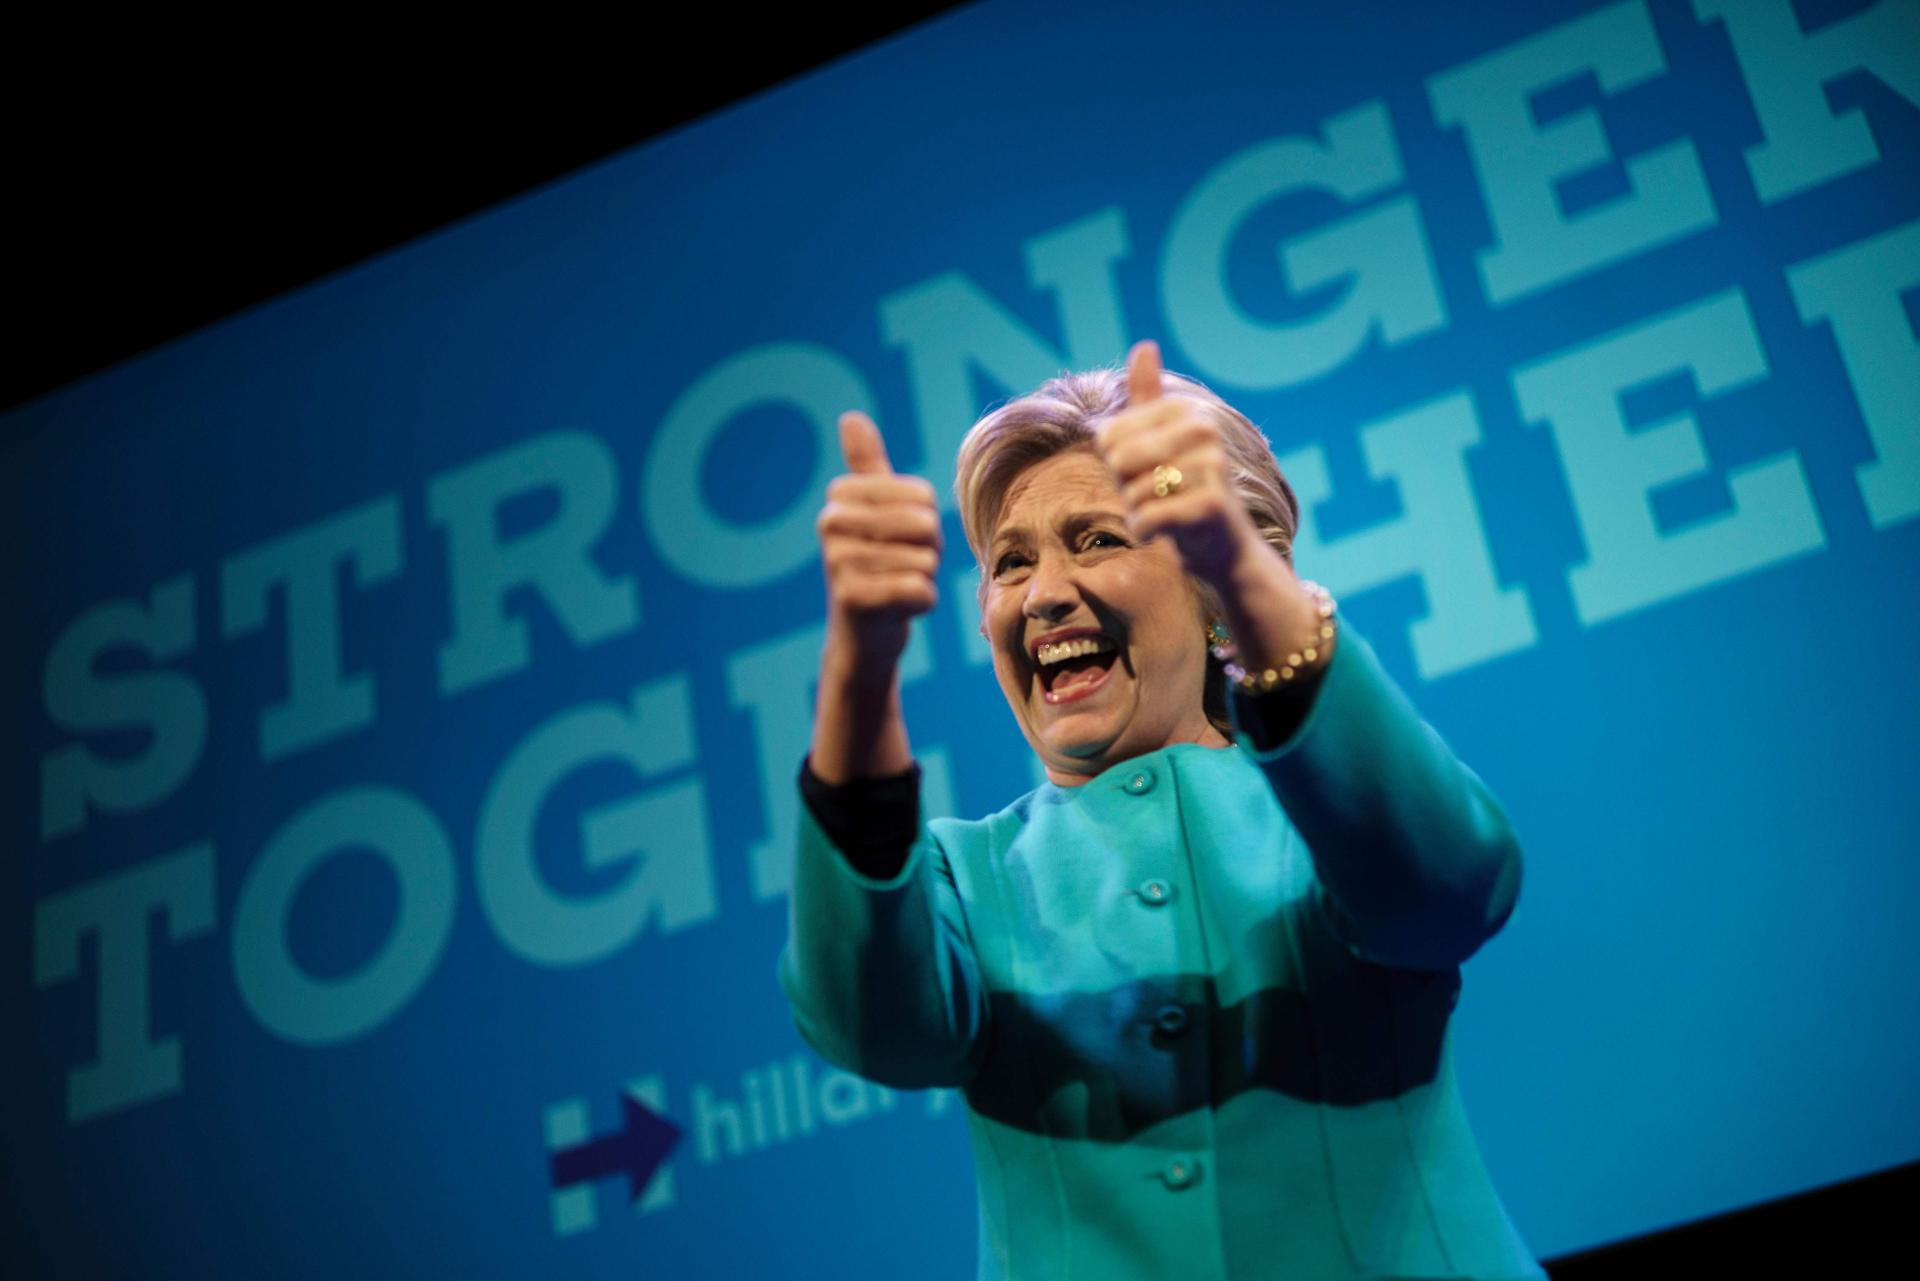 Clinton risks energizing her opponent's supporters every time she lands in a battleground state for a rally.